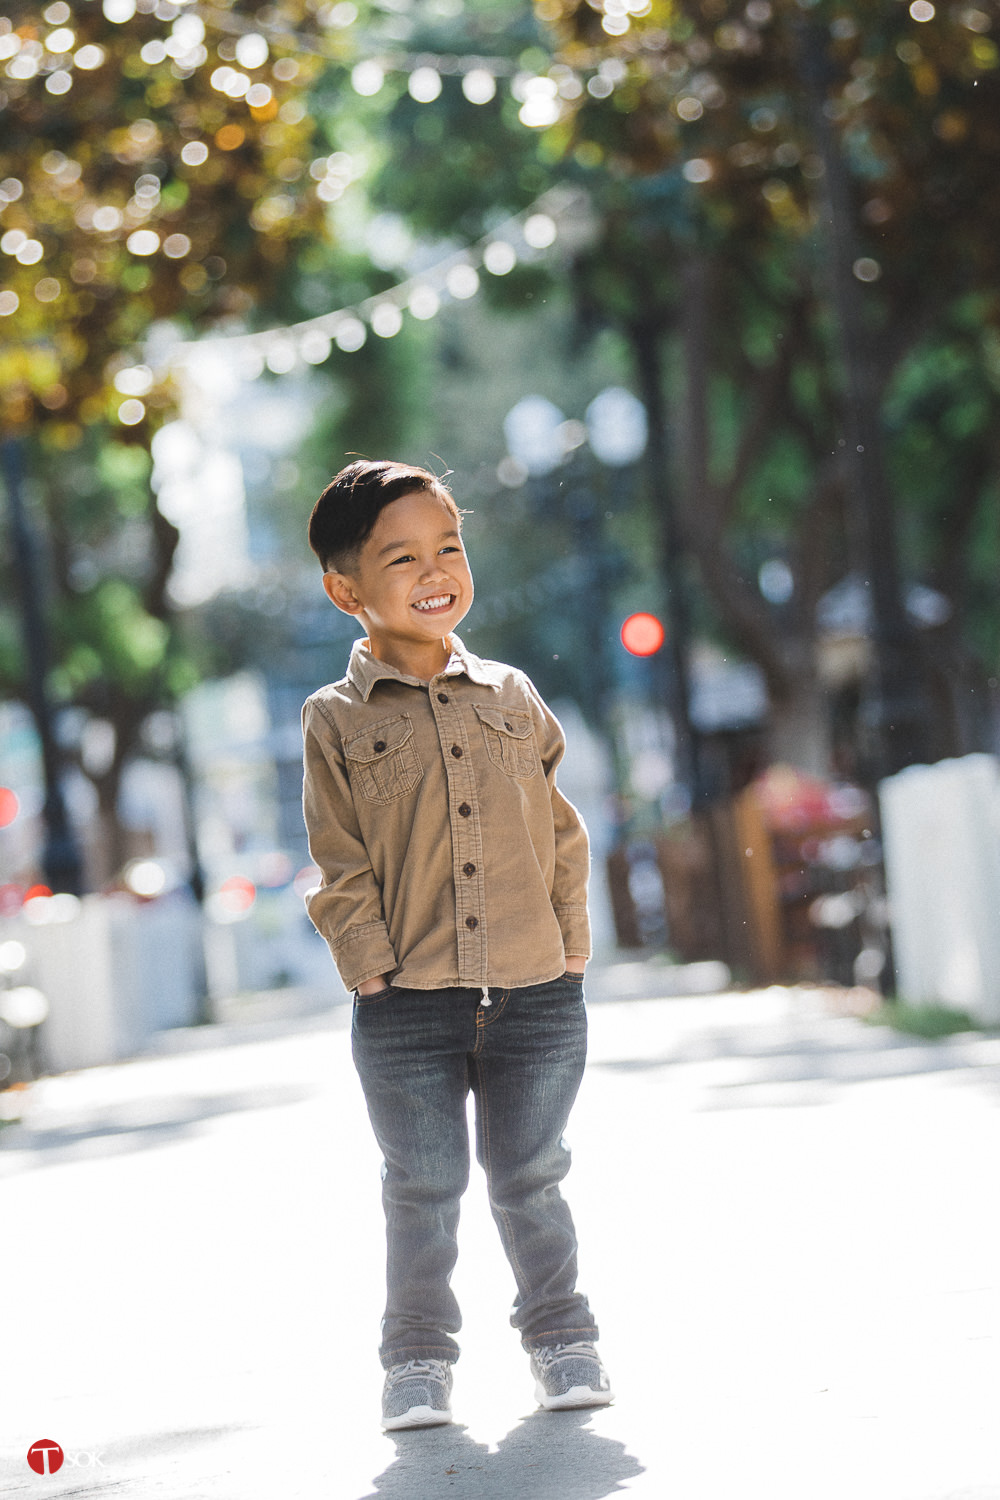 taylor-family-photoshoot-downtown-san-jose-14.jpg